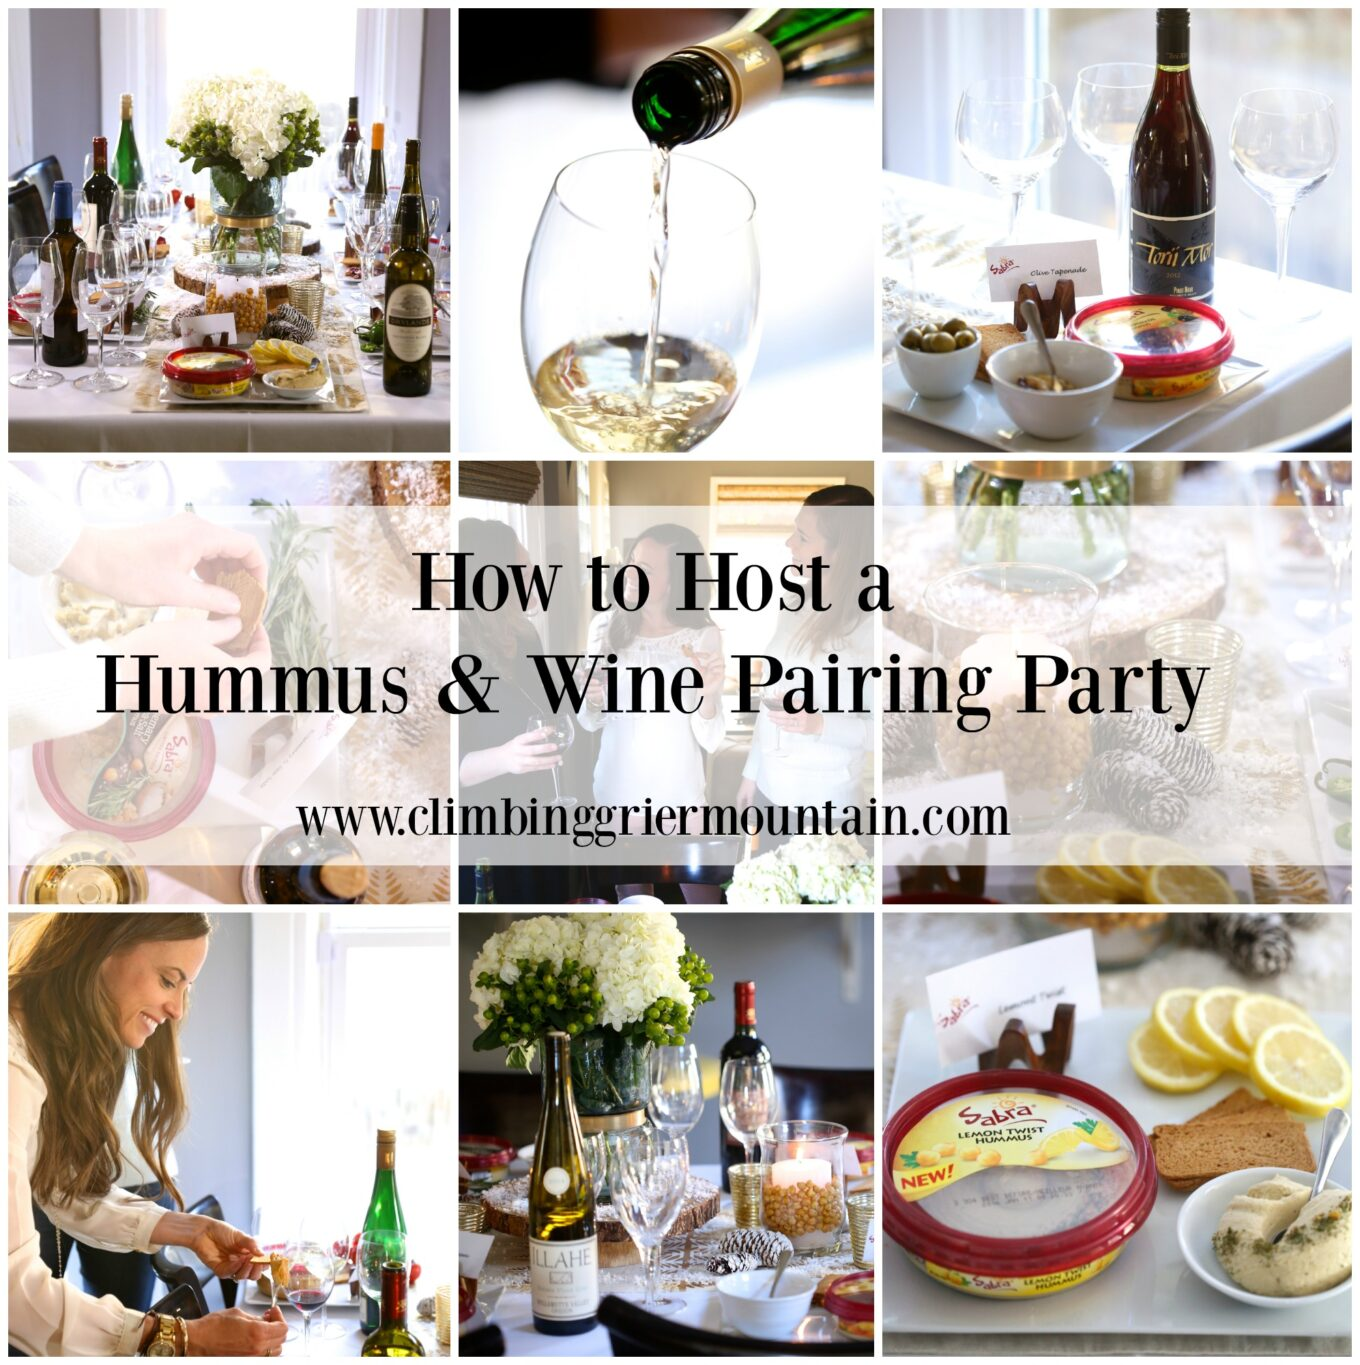 how to host a hummus & wine pairing party - Climbing Grier Mountain